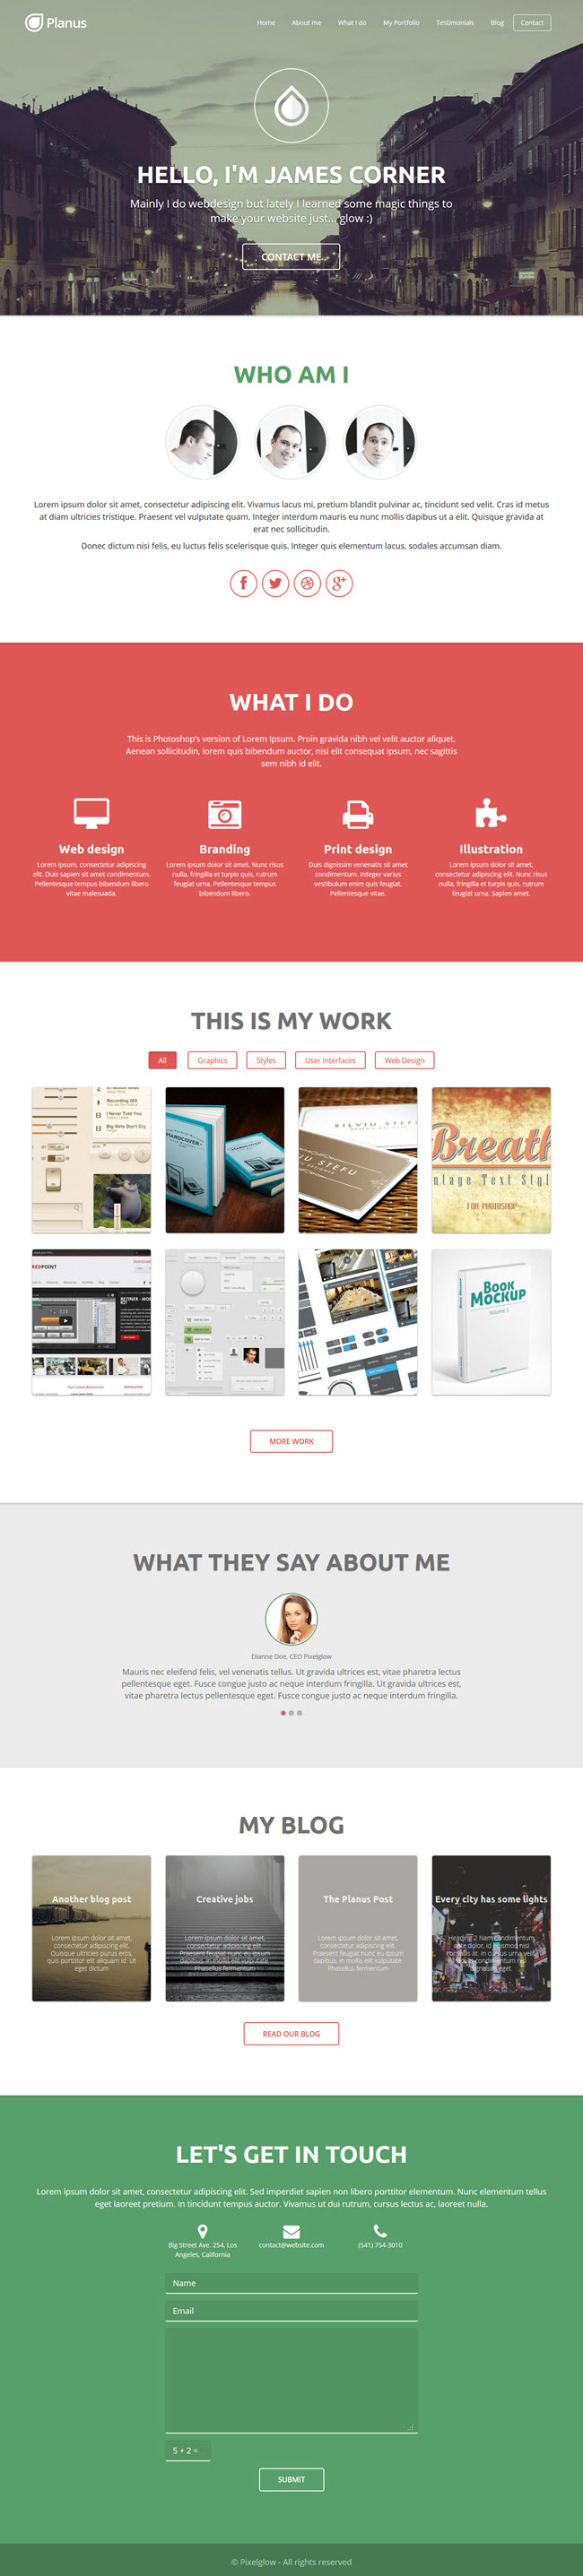 Pin by Clare Gillman on design | Pinterest | Ui design, Ui ux and ...